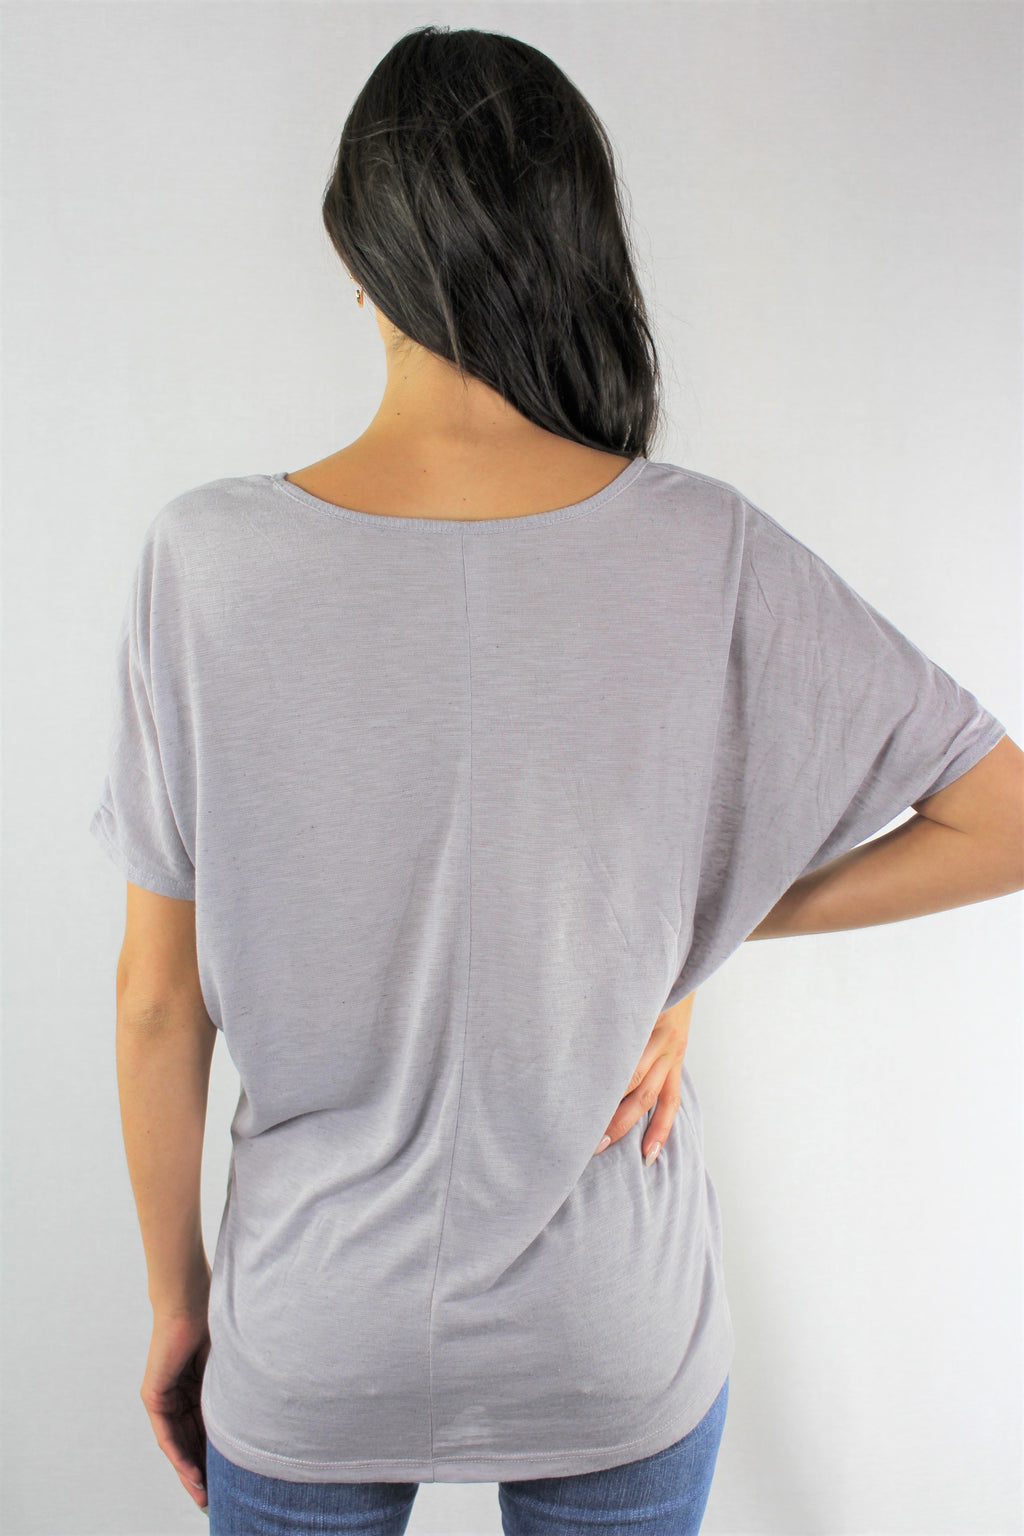 Women's Short Sleeve Relaxed Fit V Neck Top